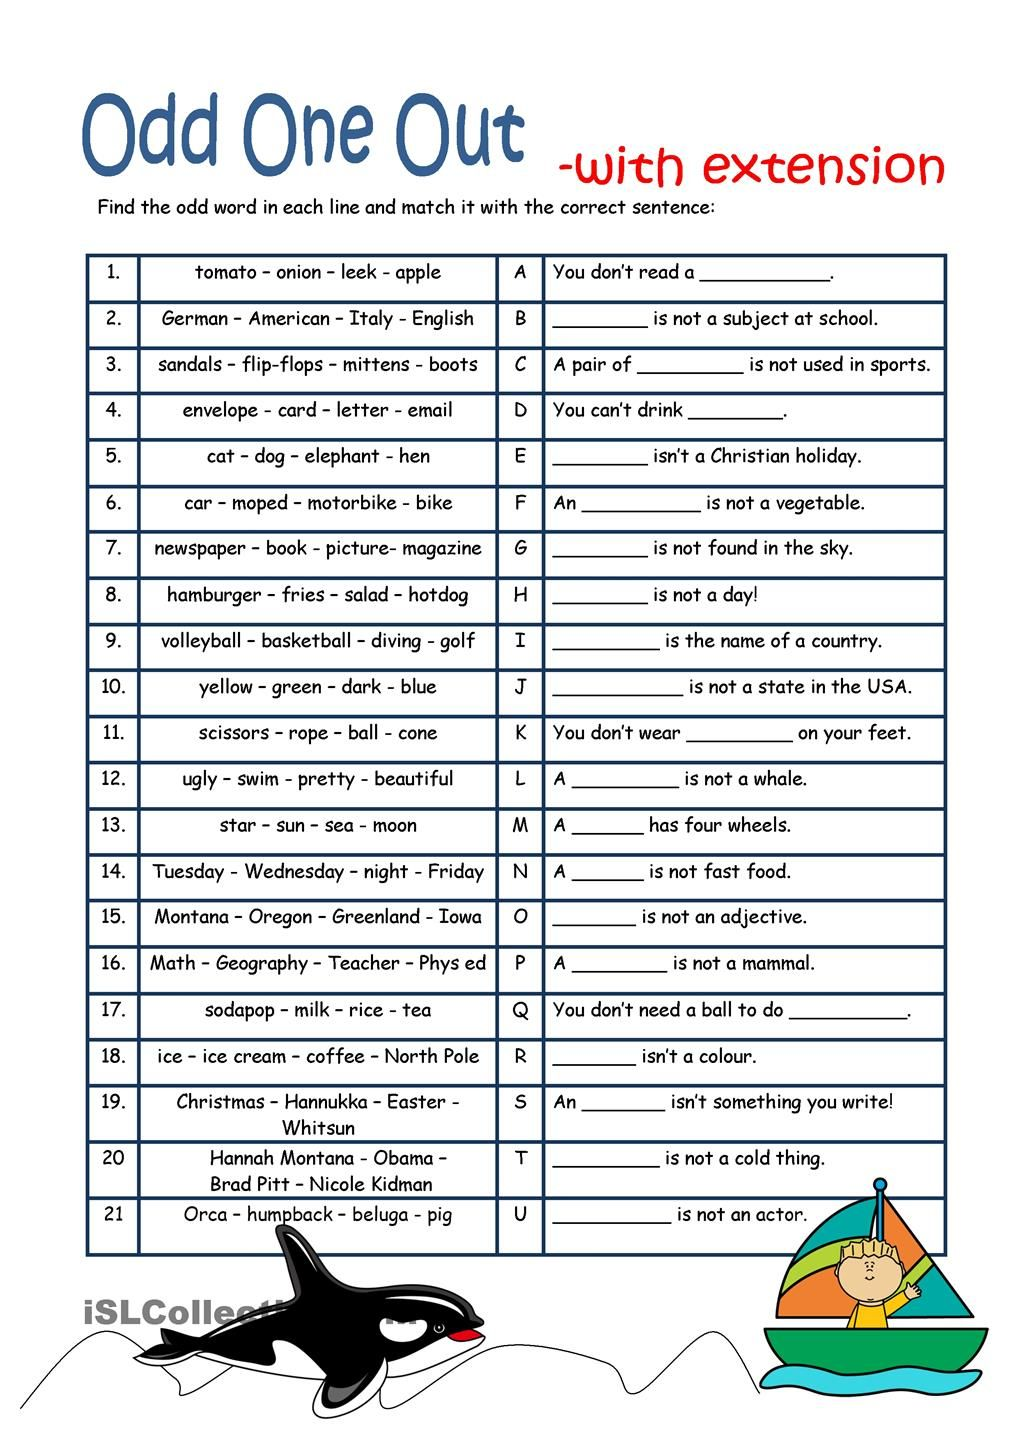 Odd One Out With Extension English Worksheets For Kids Worksheets For Kids Reading Comprehension Worksheets [ 1440 x 1018 Pixel ]